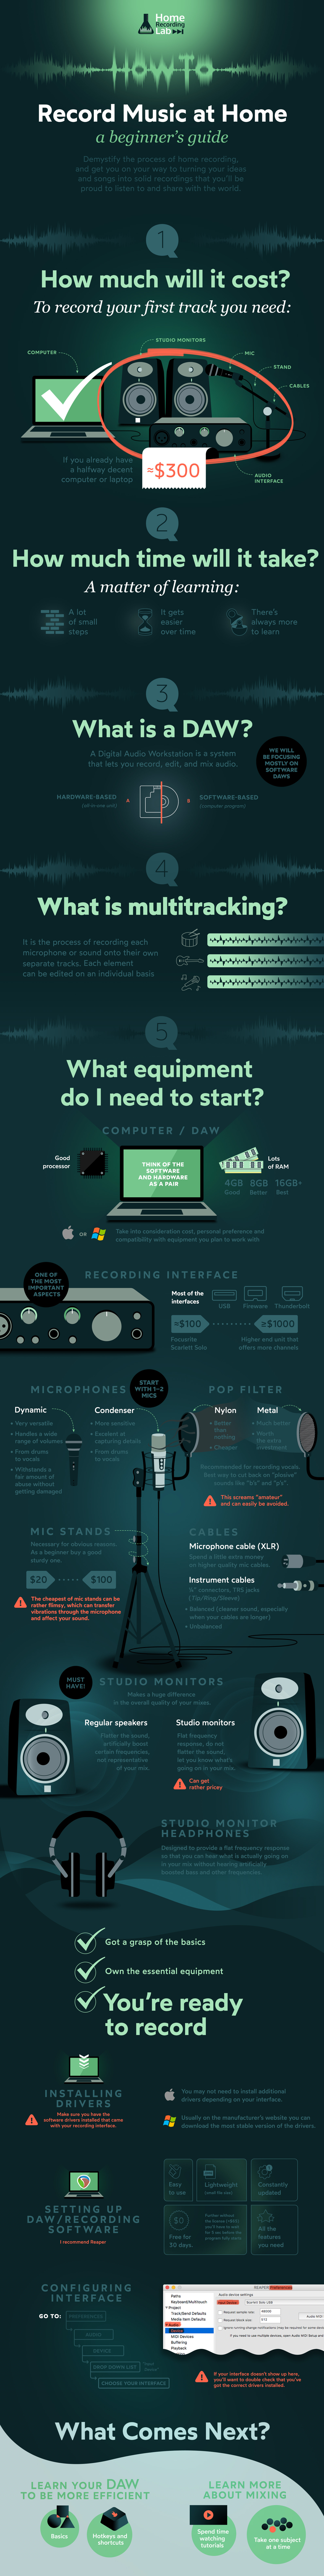 Infographic - How to Record Music at Home